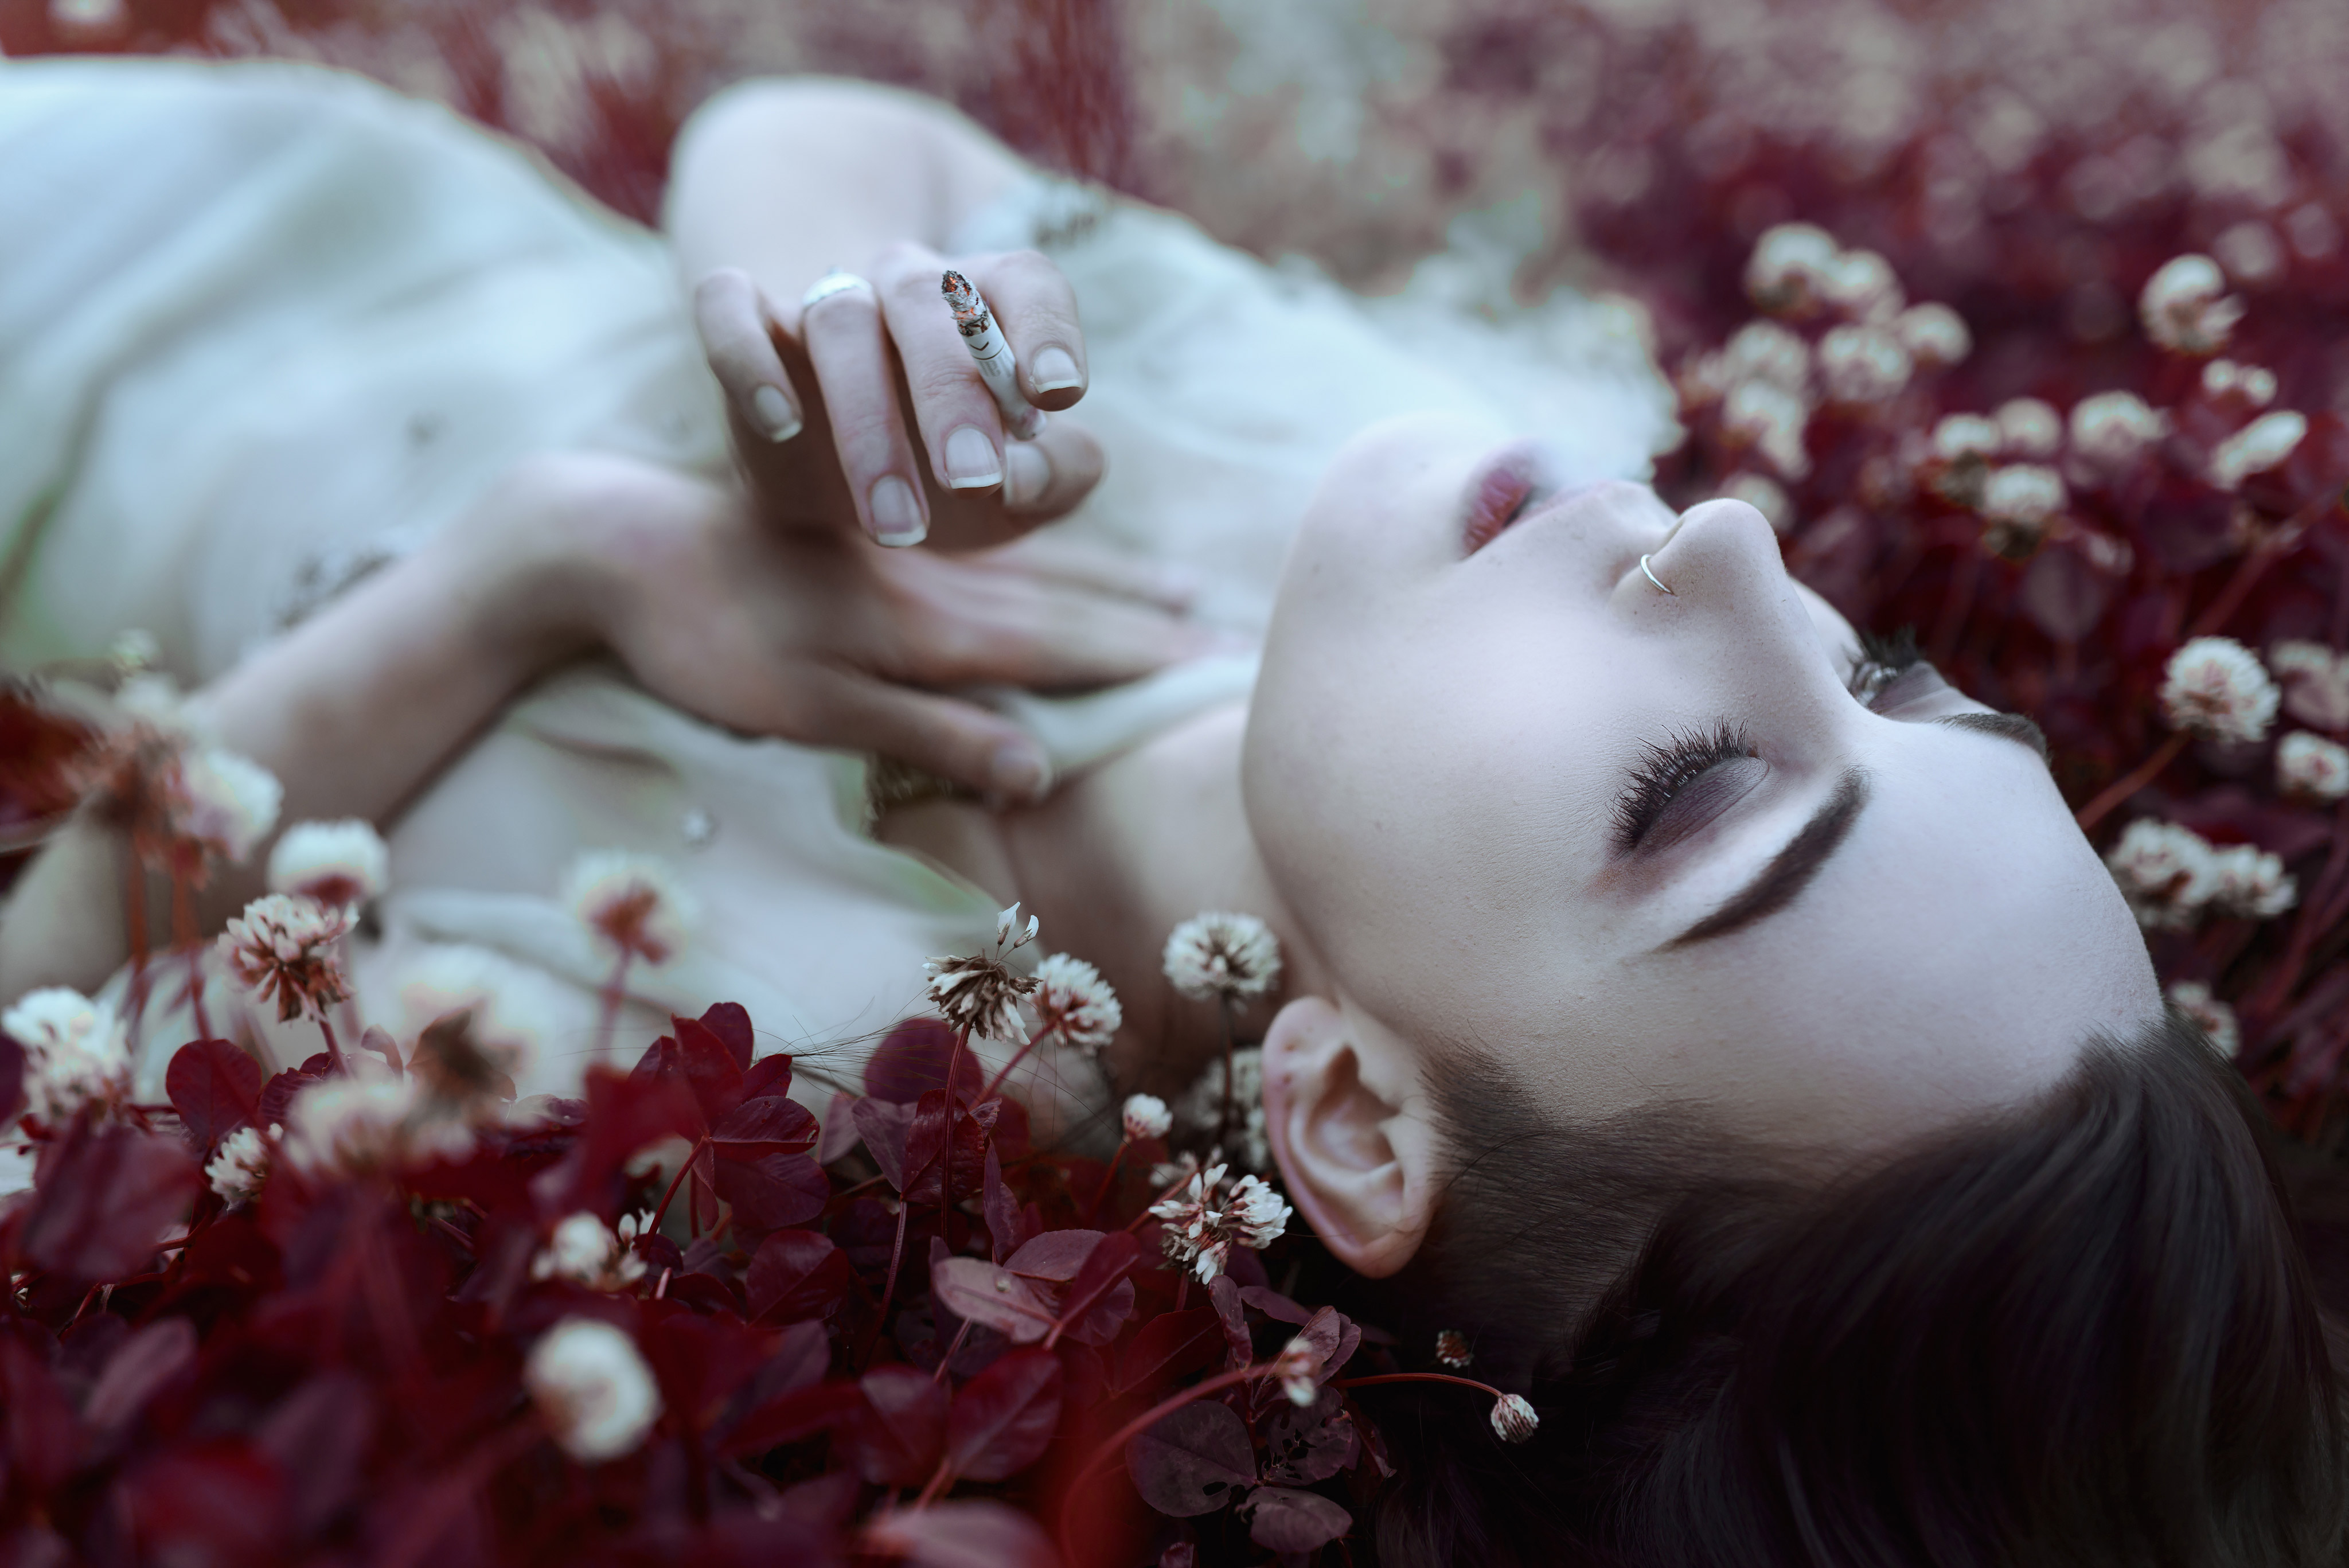 Gestalta photographed by Akiomi Kuroda. Picture of girl smoking a cigarette in tinted red grass